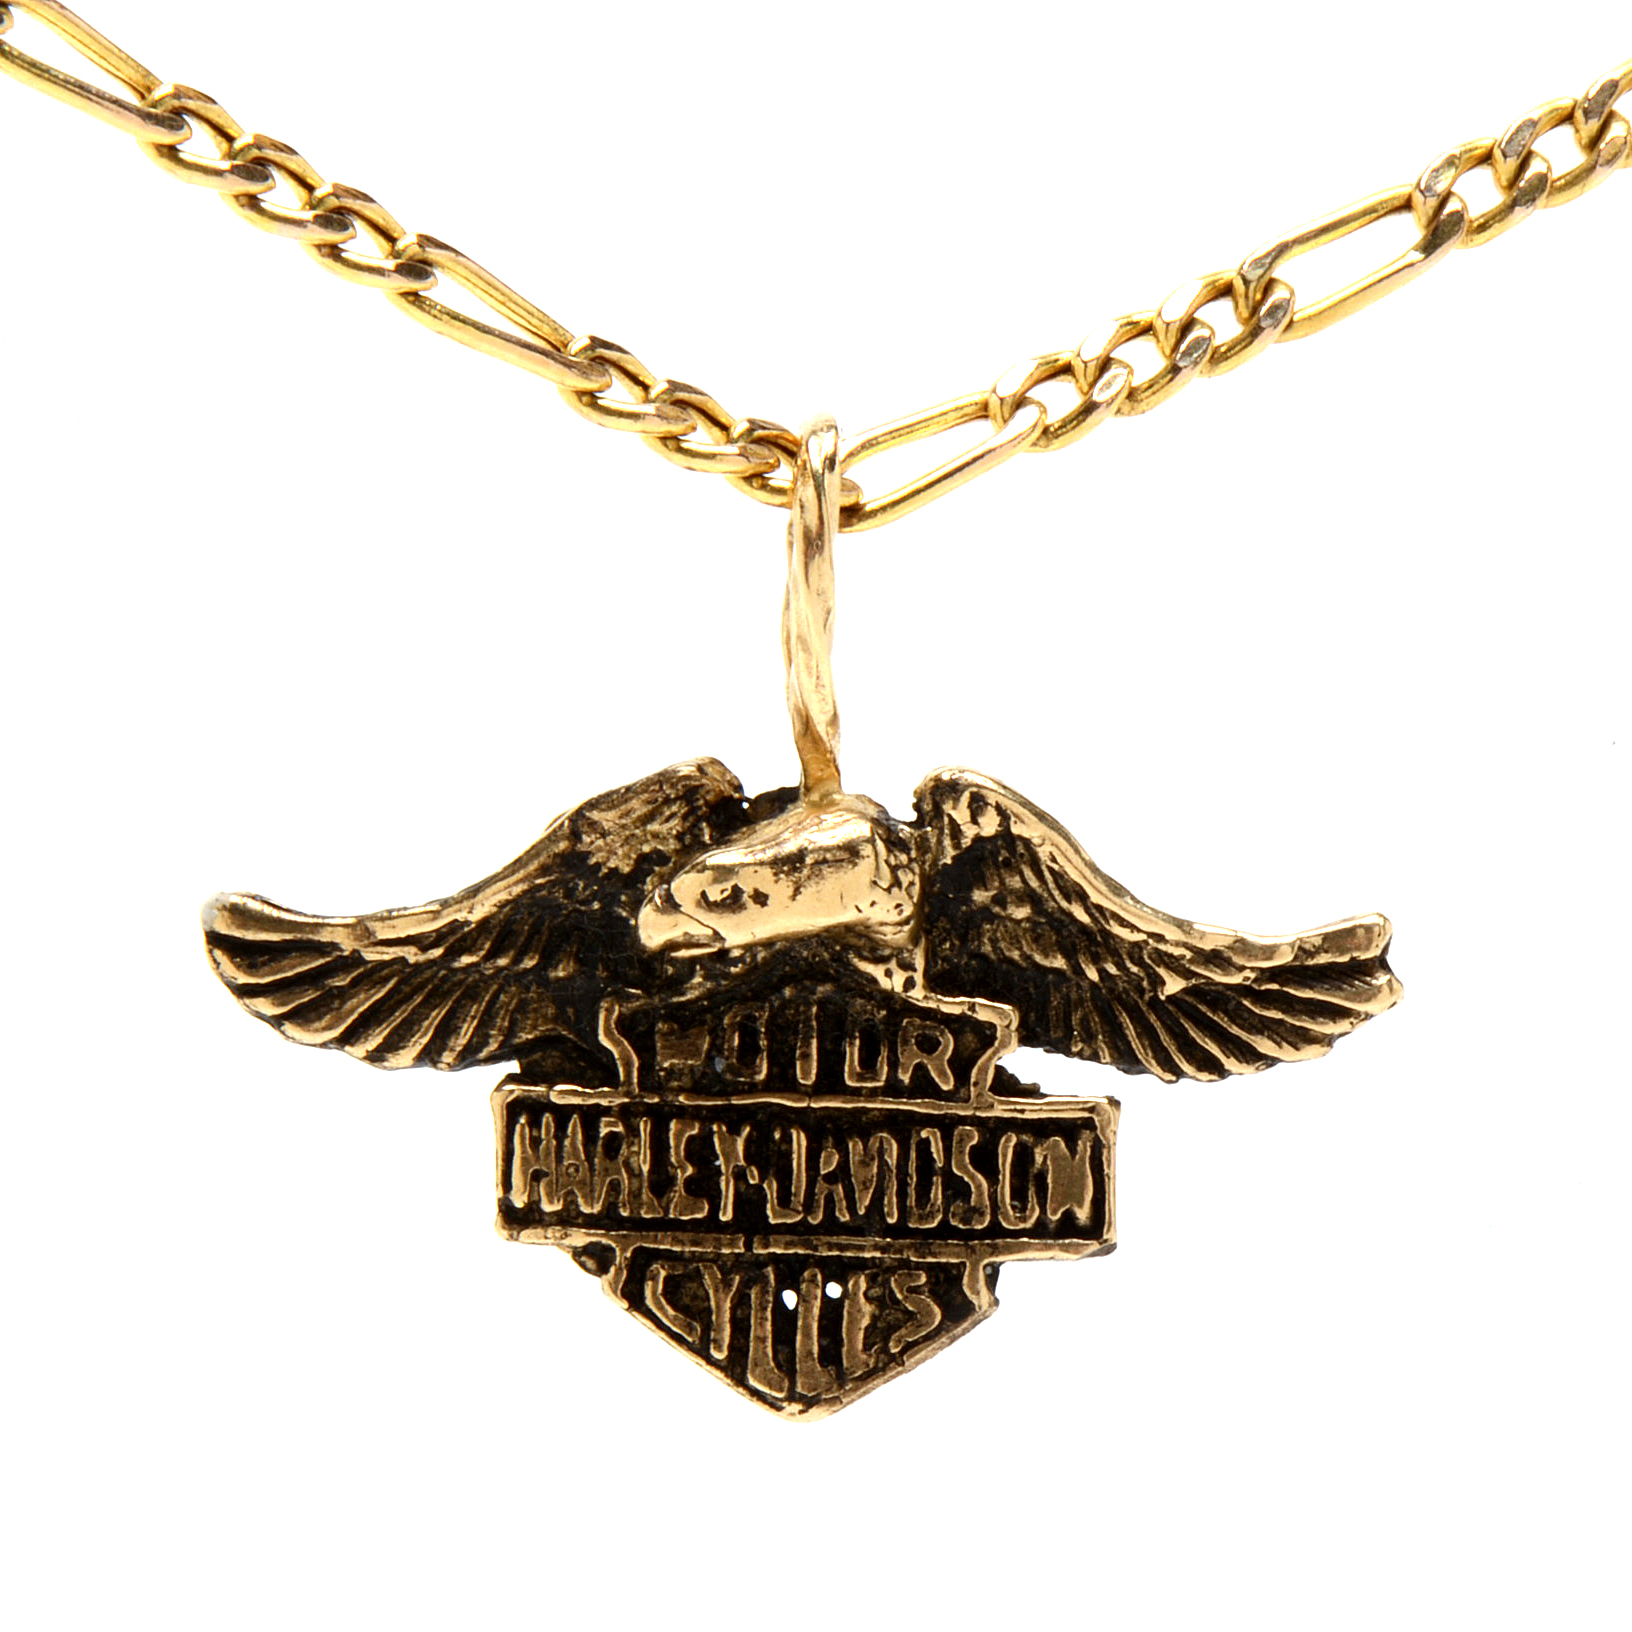 14K Yellow Gold Harley Davidson Pendant on 10K Yellow Gold Chain EBTH